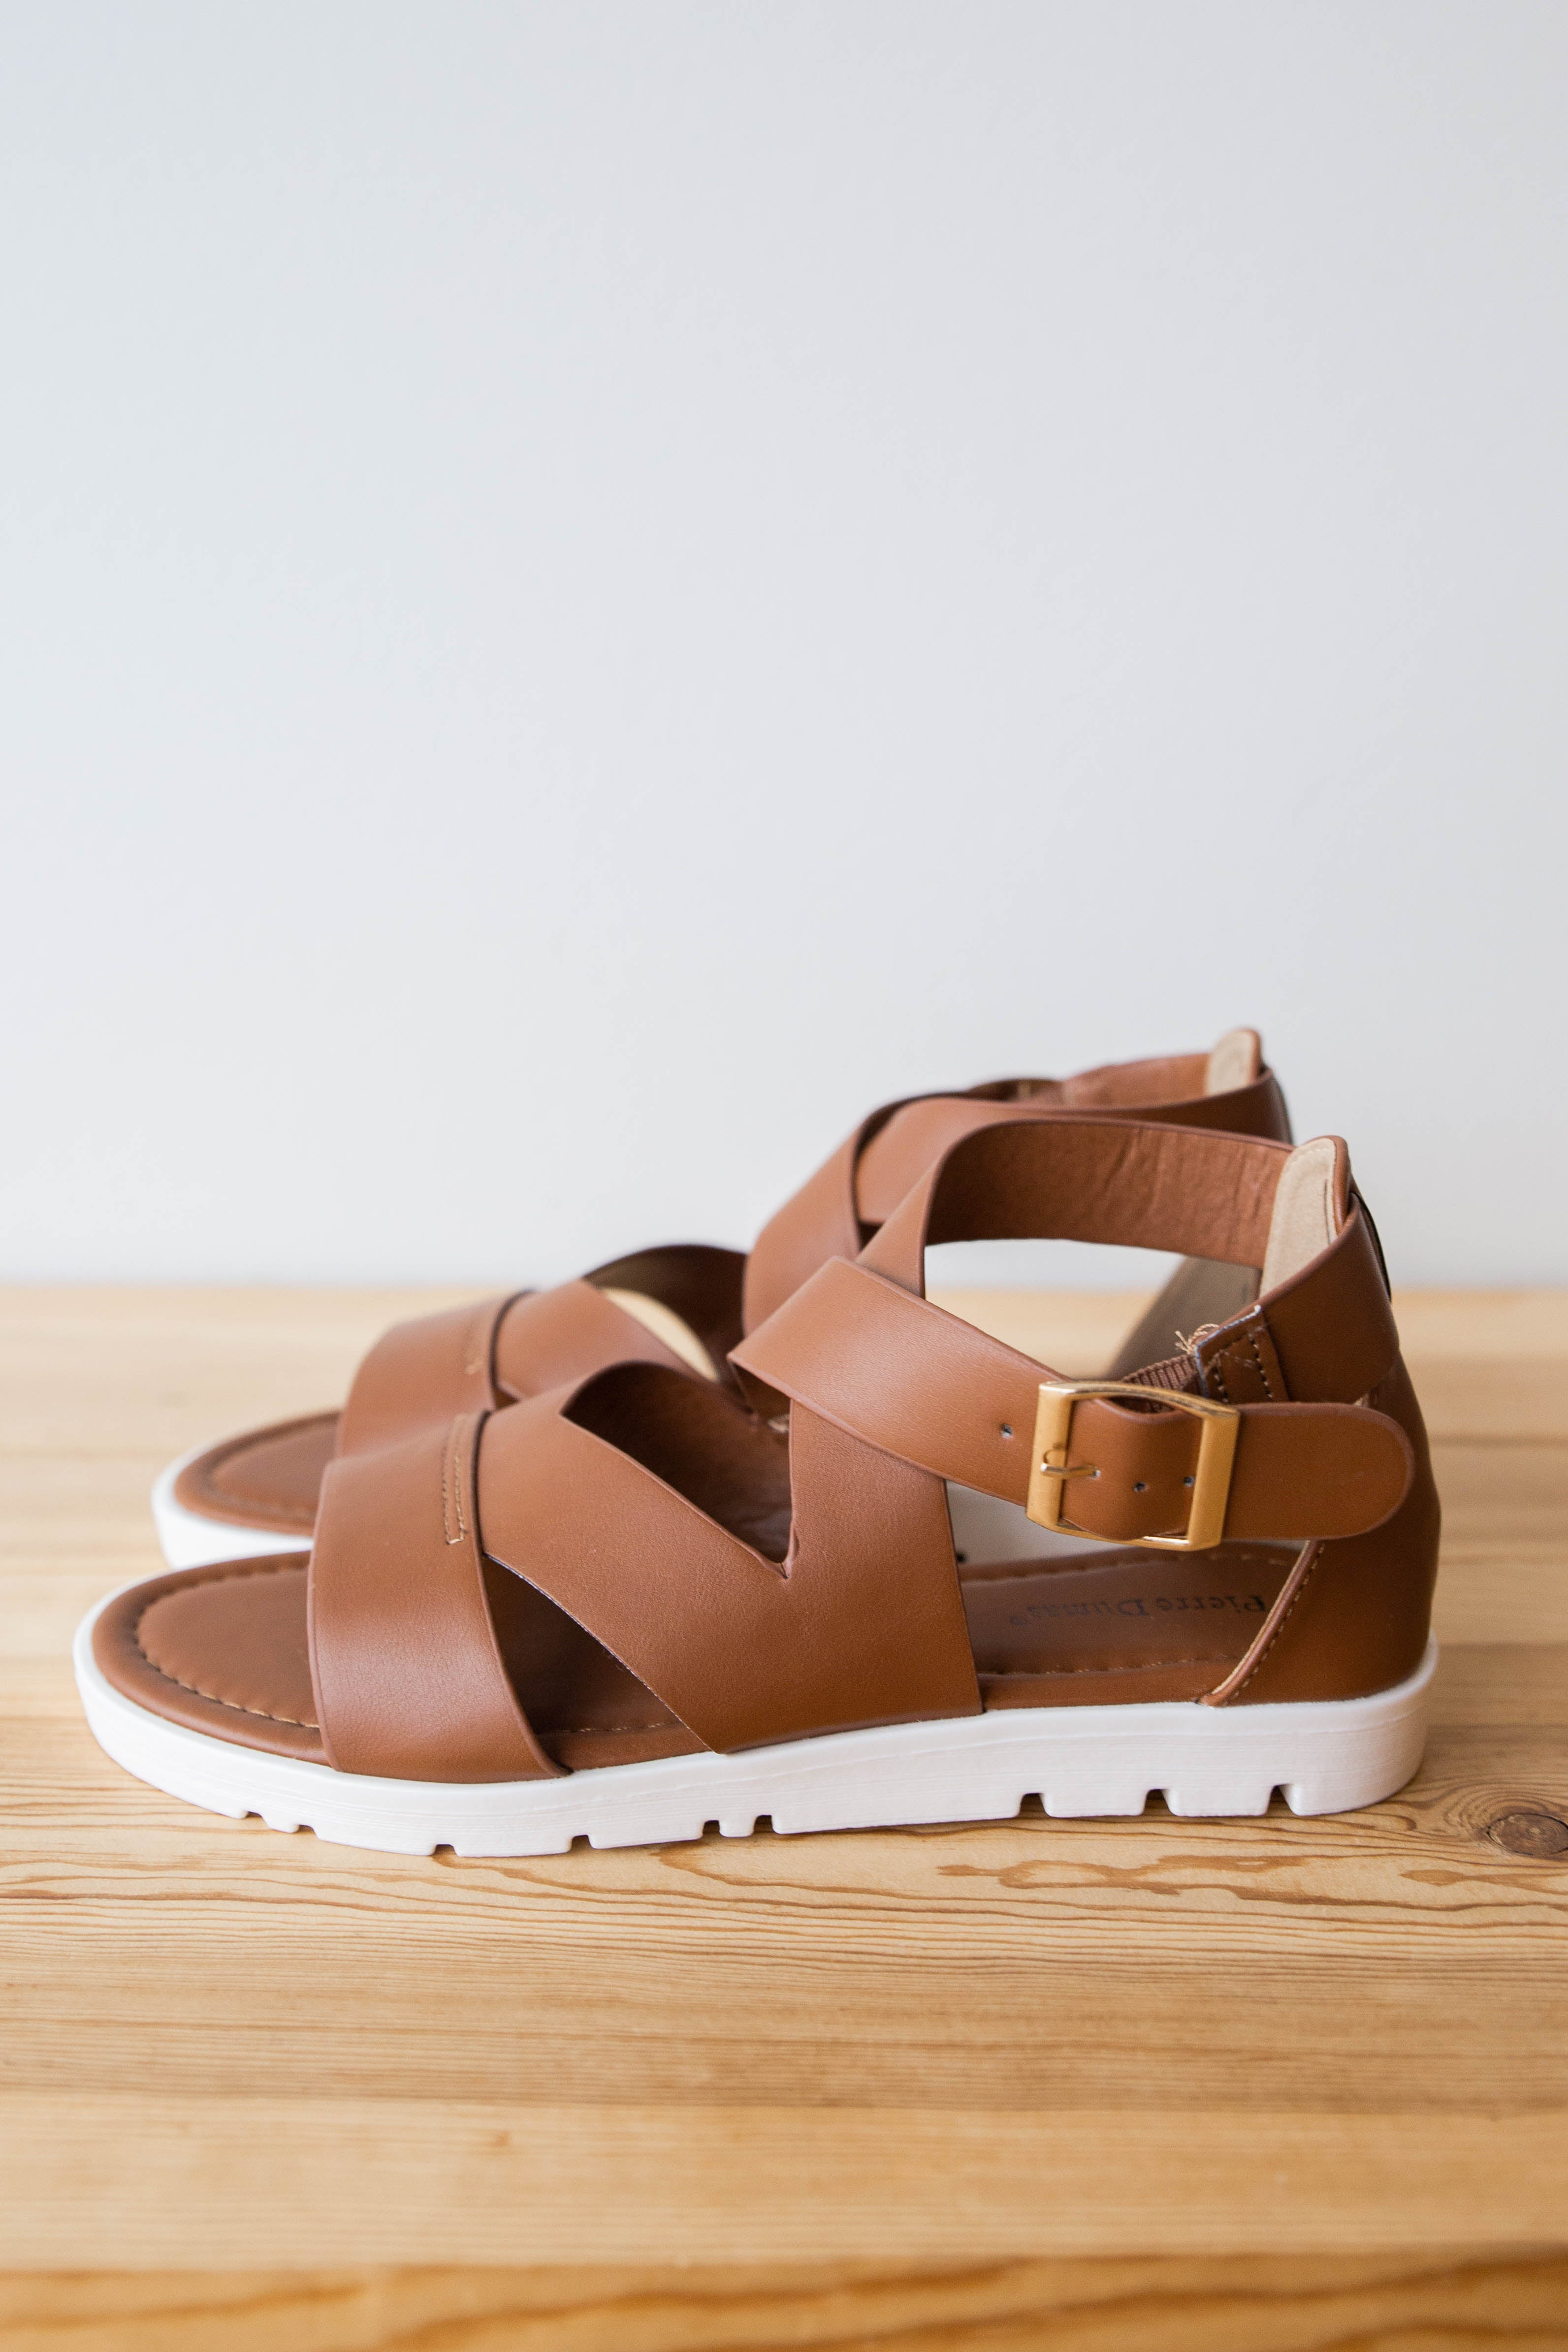 [shop name], dreams come true sandal